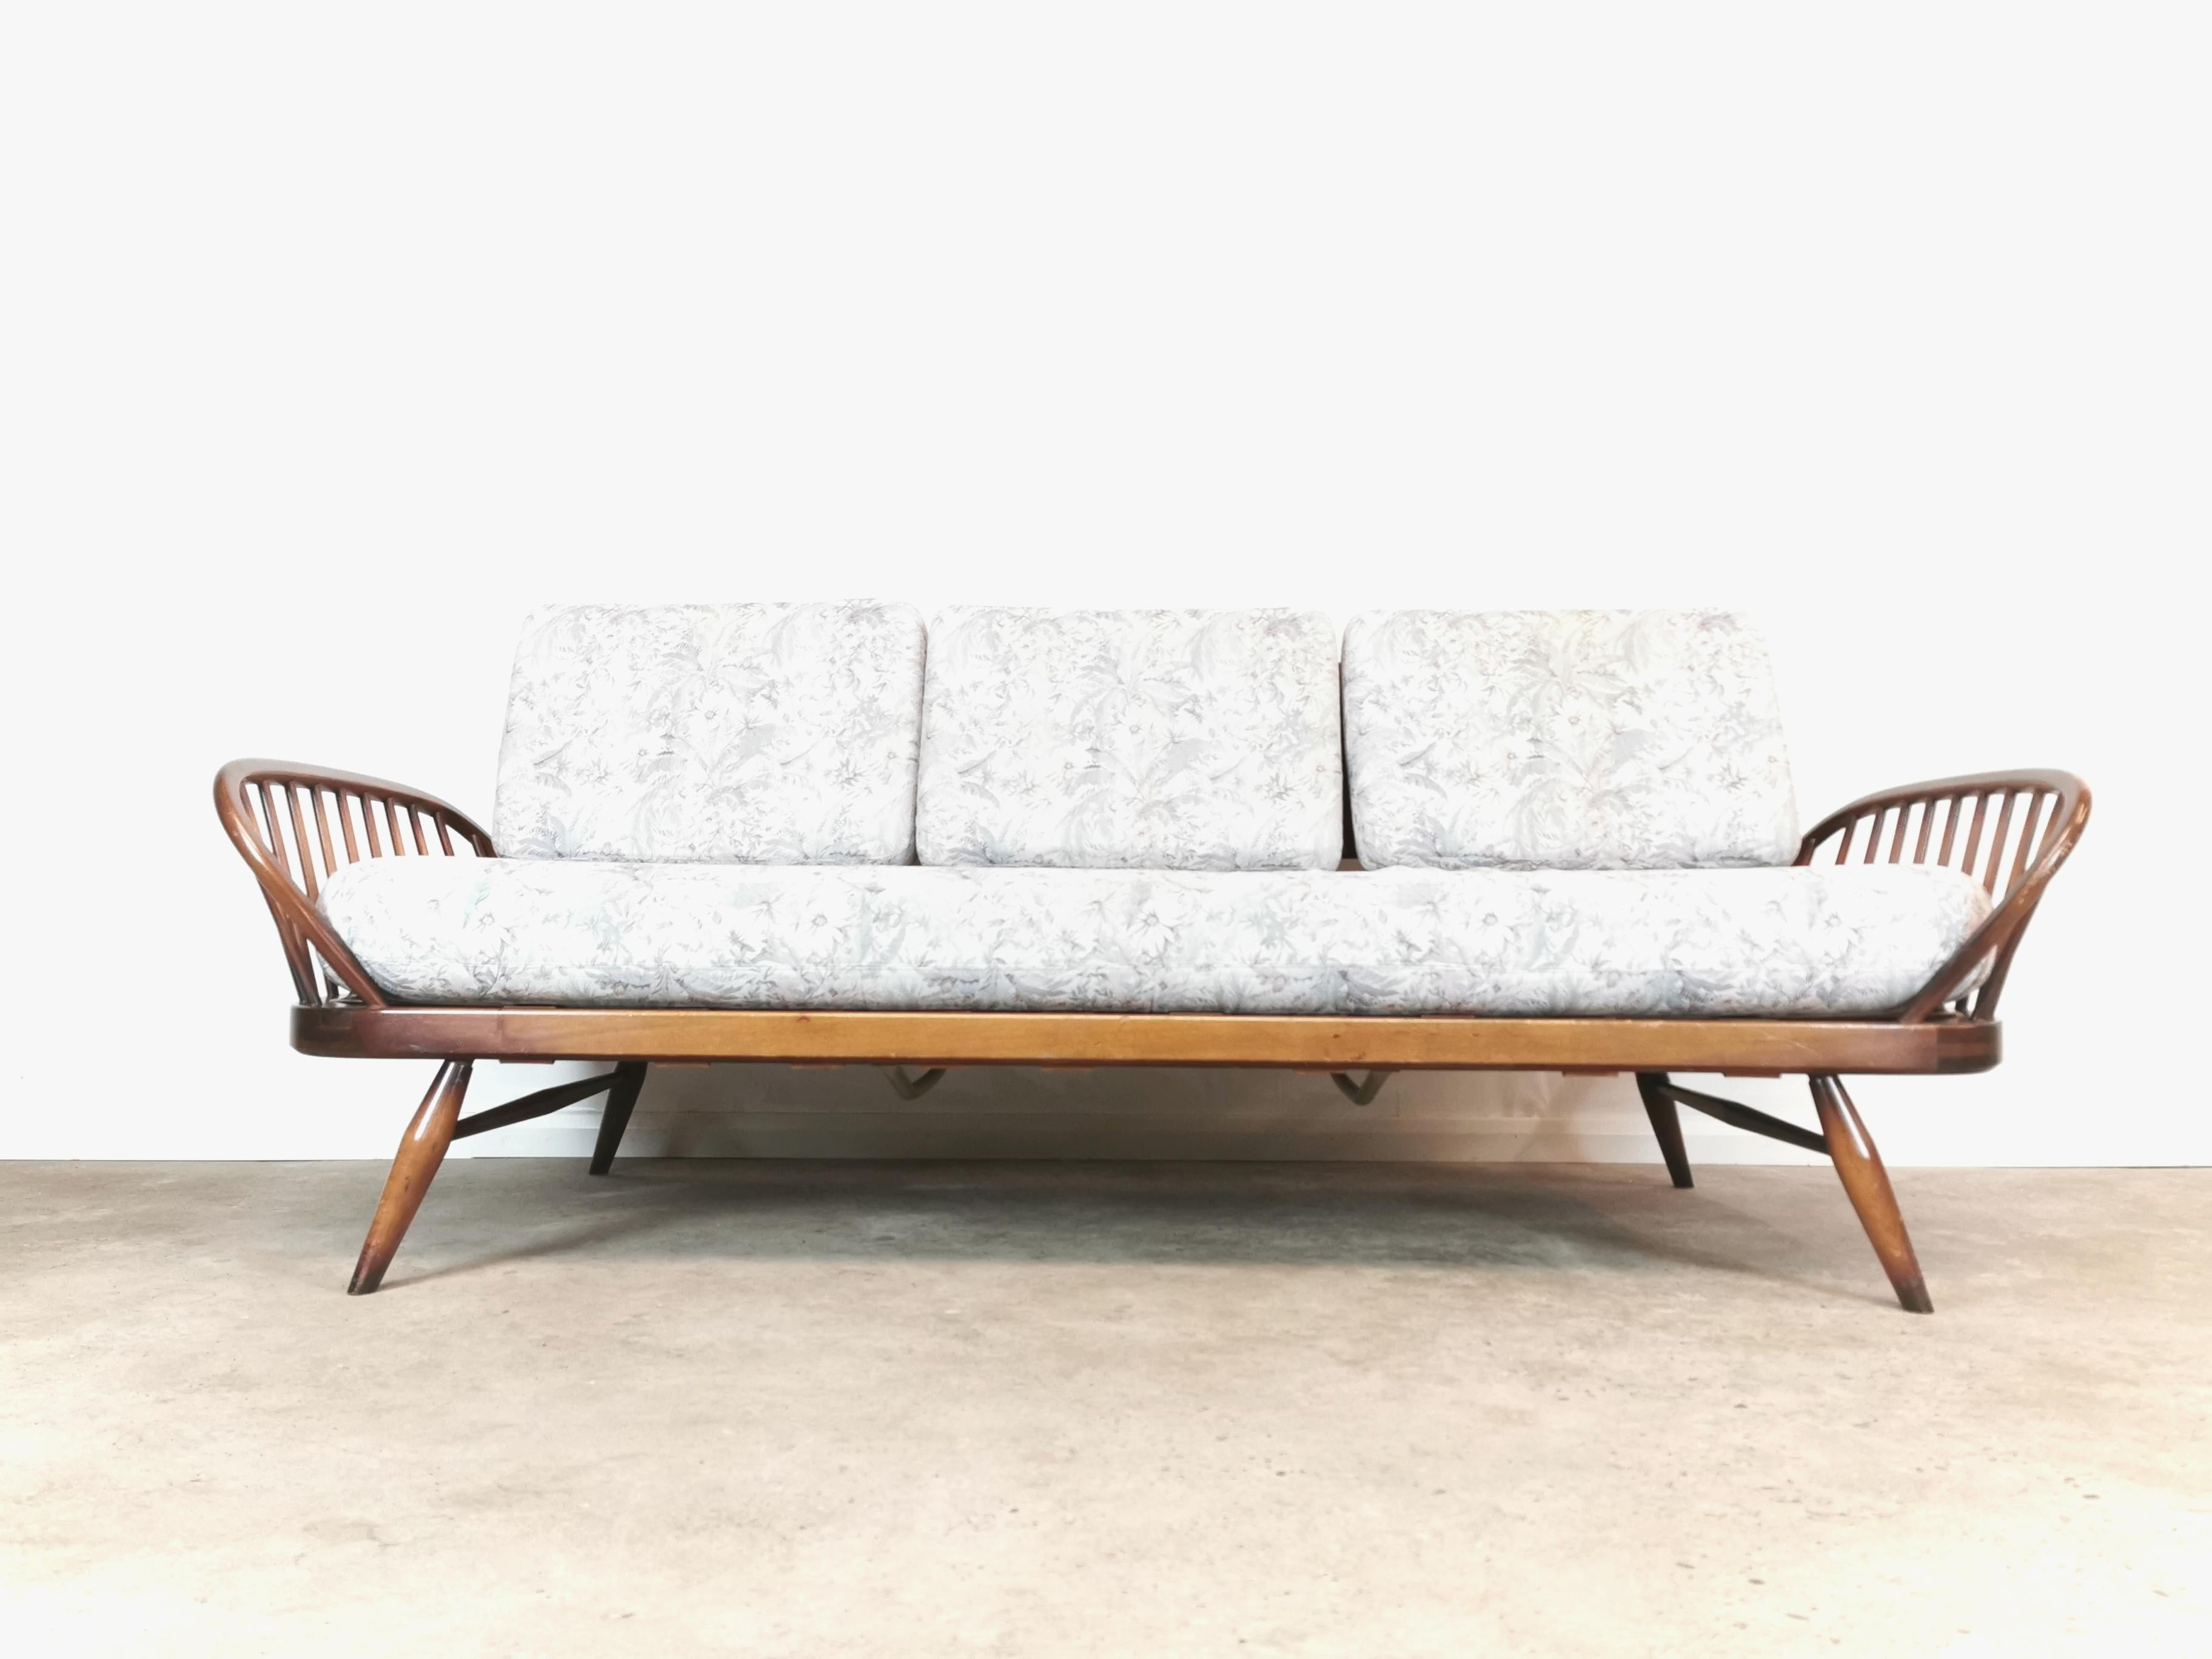 Vintage Ercol Midcentury Studio Day Bed Couch Sofa And Cushions For Sale At 1stdibs